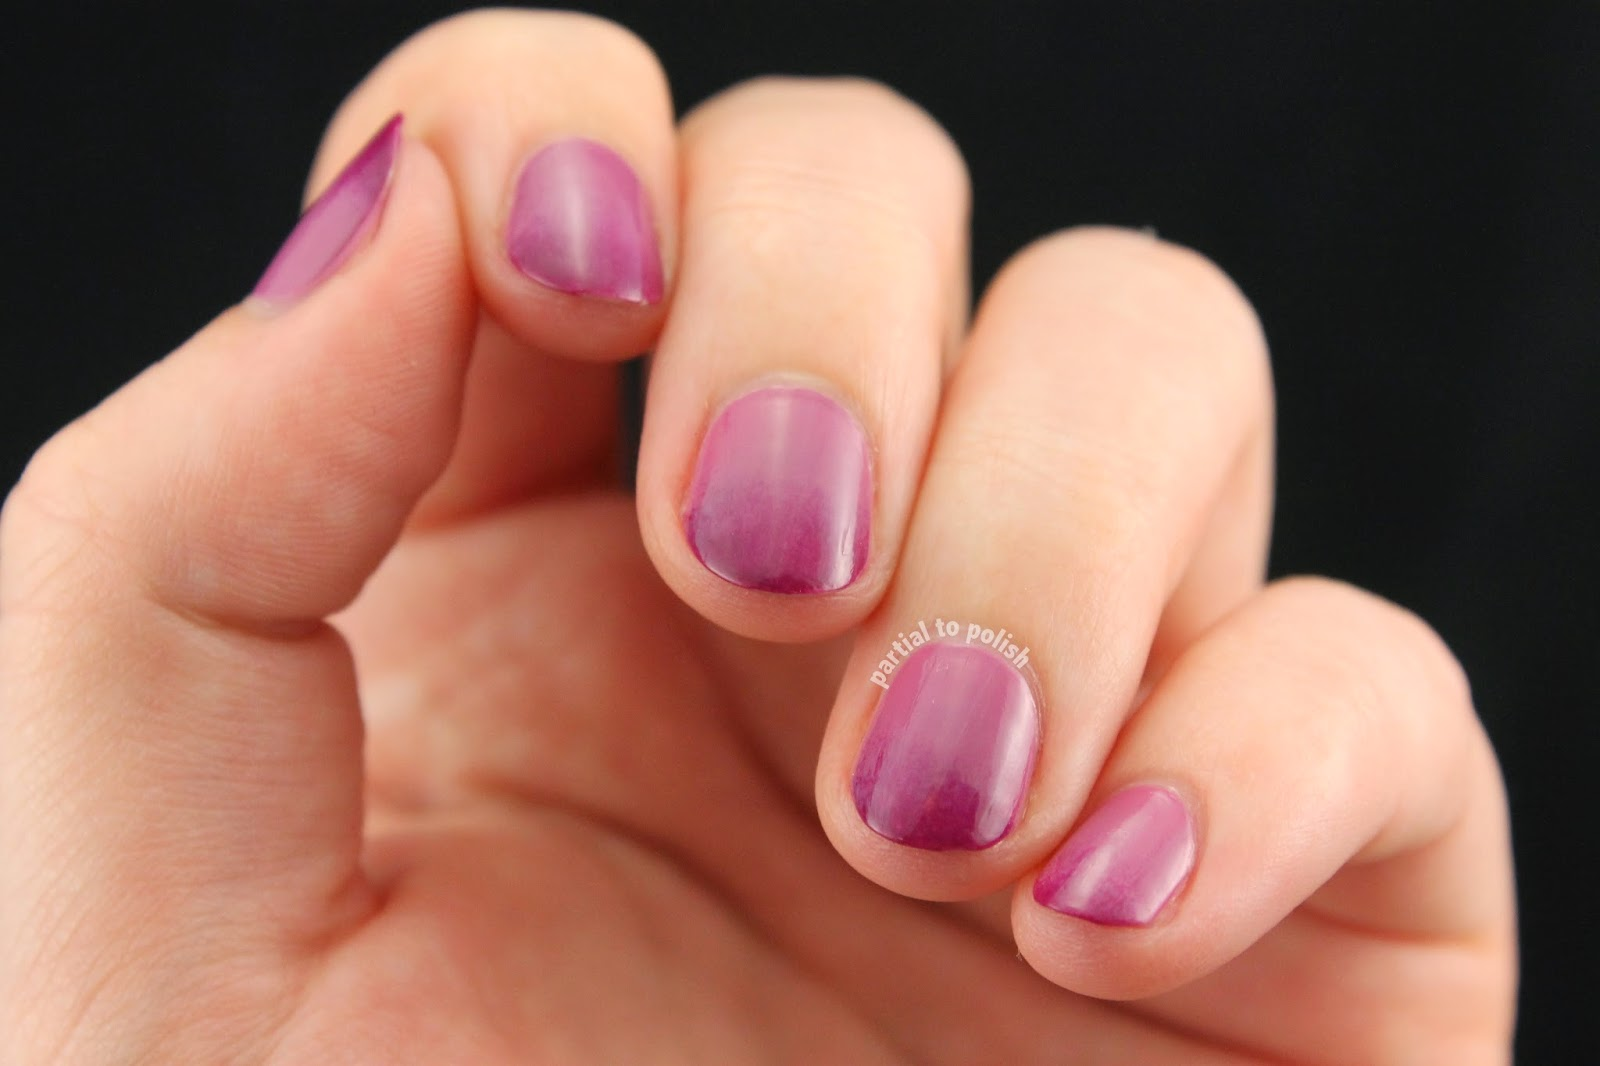 Purple Gradient Nails Topped with Simple Grey Lines Featuring Sonia Kashuk Nail Polish